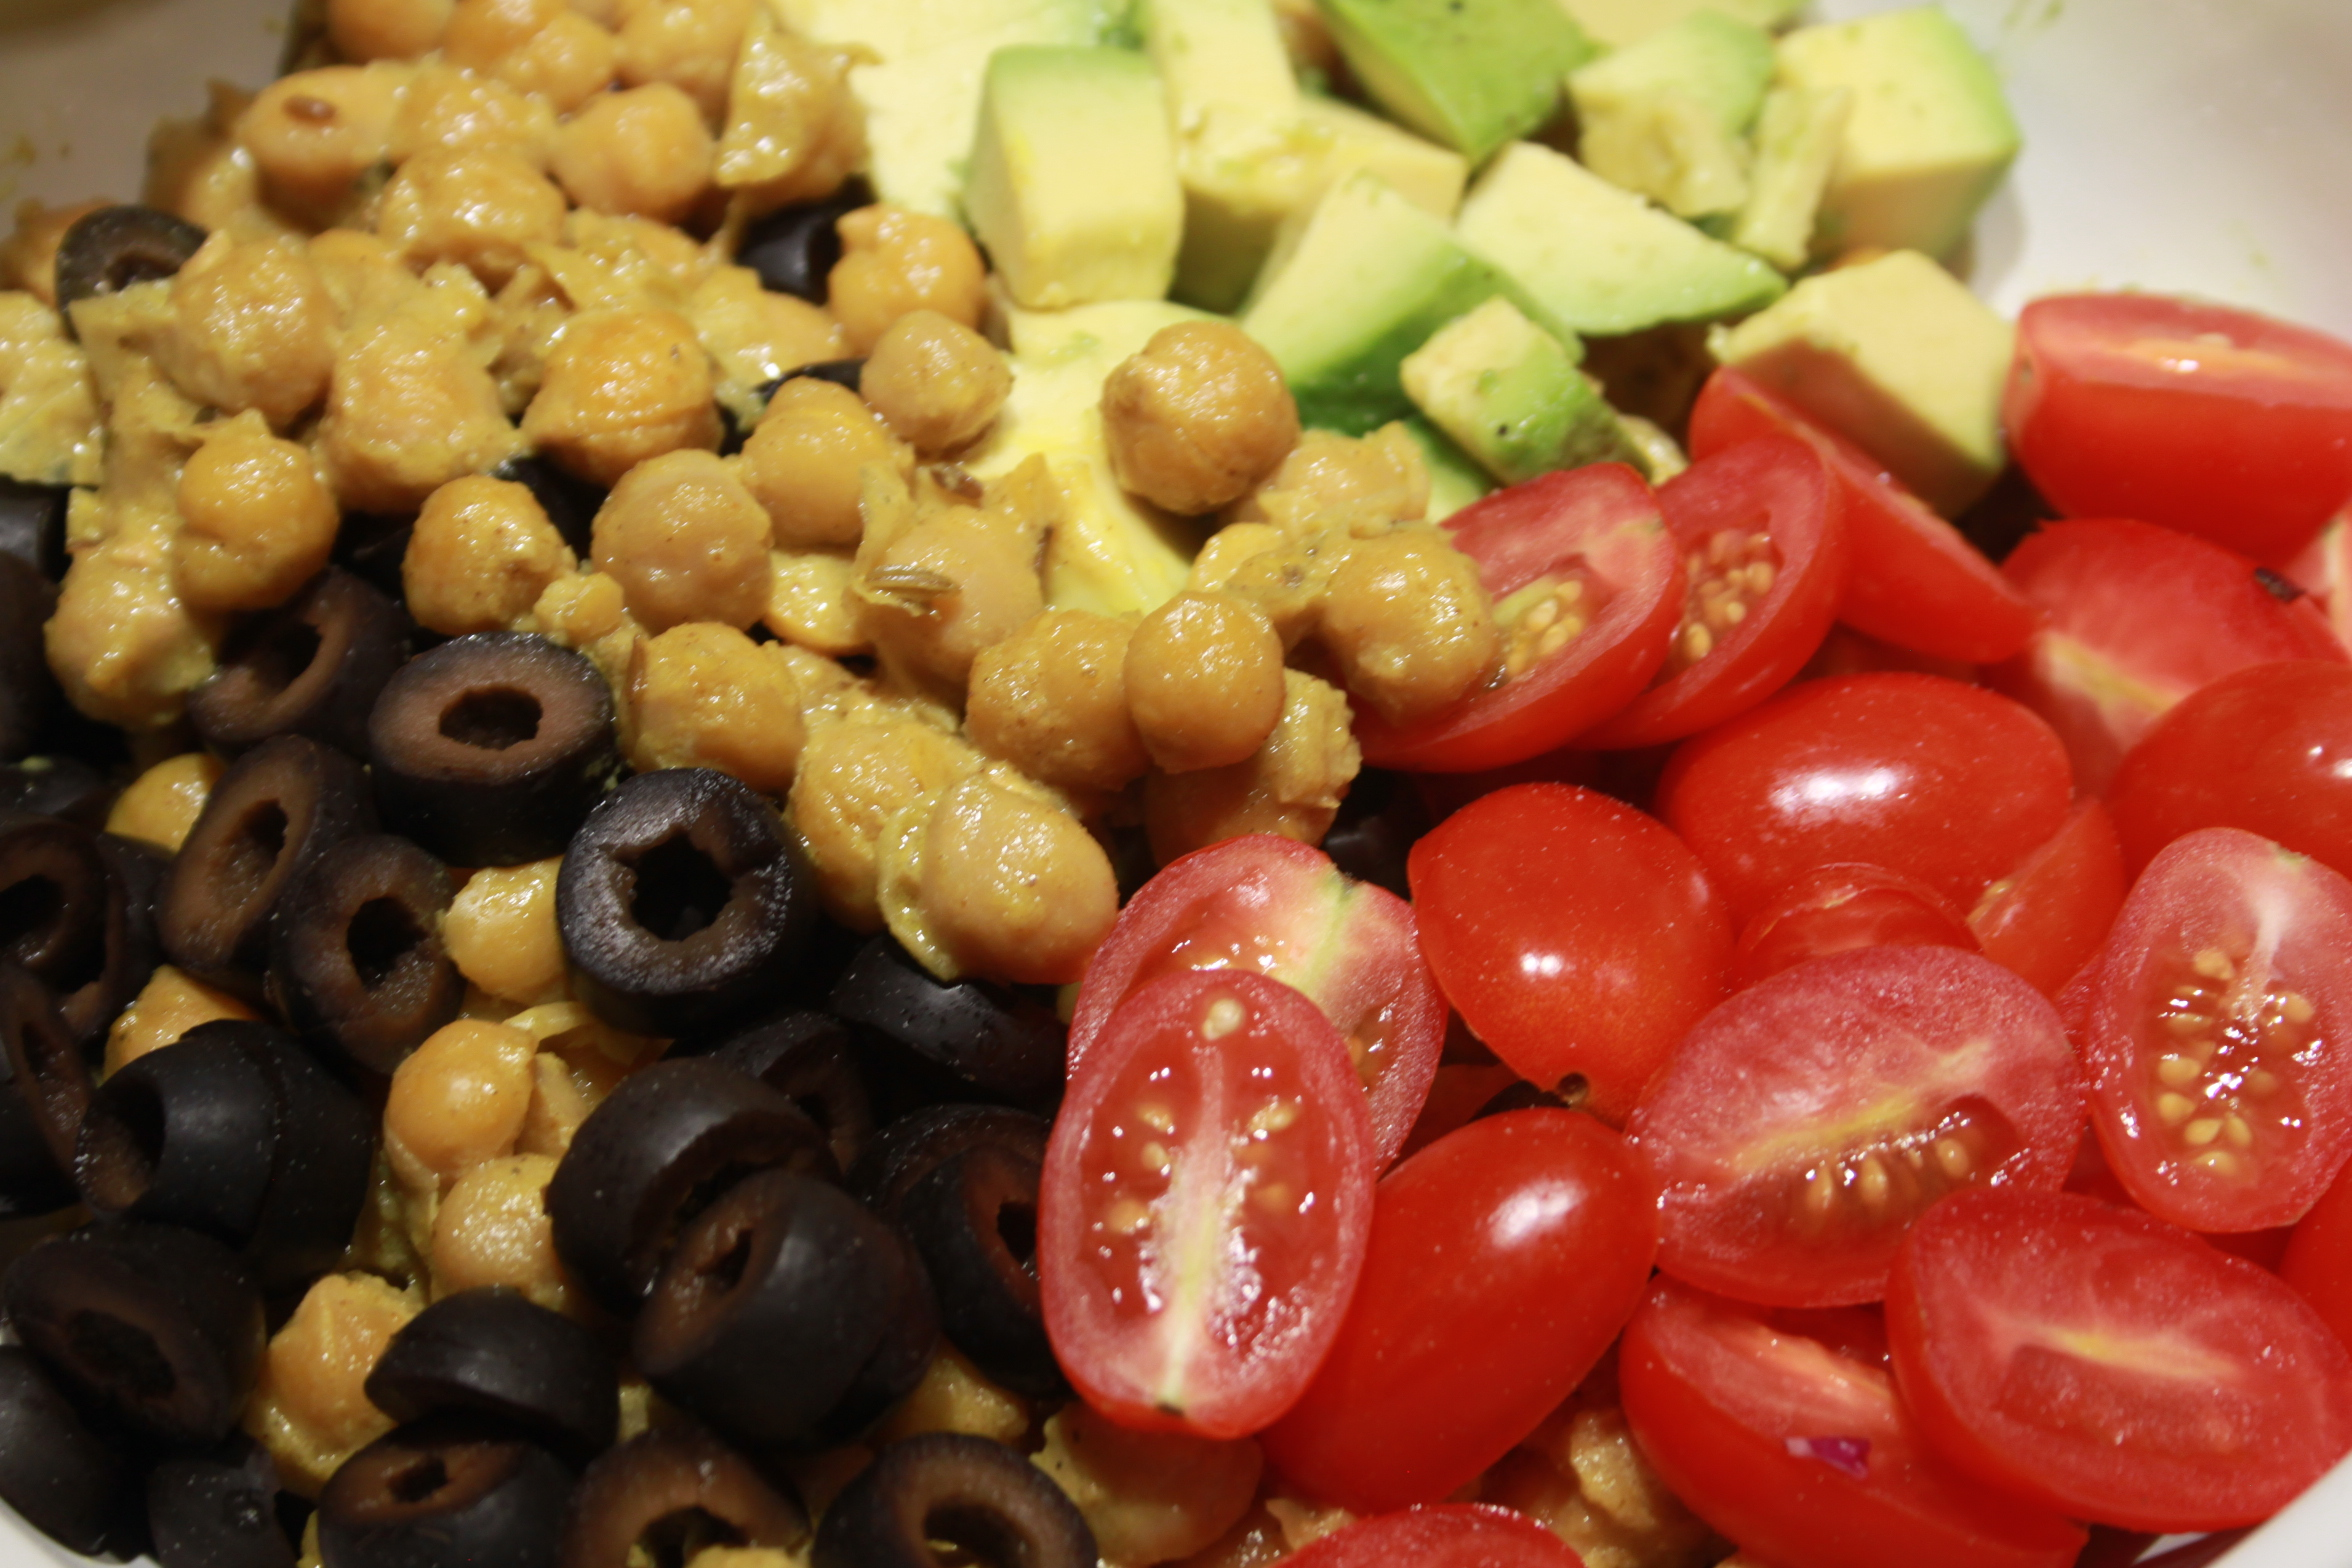 Chickpea Burrito Bowl - $10 - Curried chickpeas topped with veggies and sour creamIngredients: Chickpeas, Coconut Cream, Tomatoes, Olives, Avocado, Sour Cream, Curry Powder, Turmeric, Cumin, Sea Salt, Oregano, Grapeseed Oil